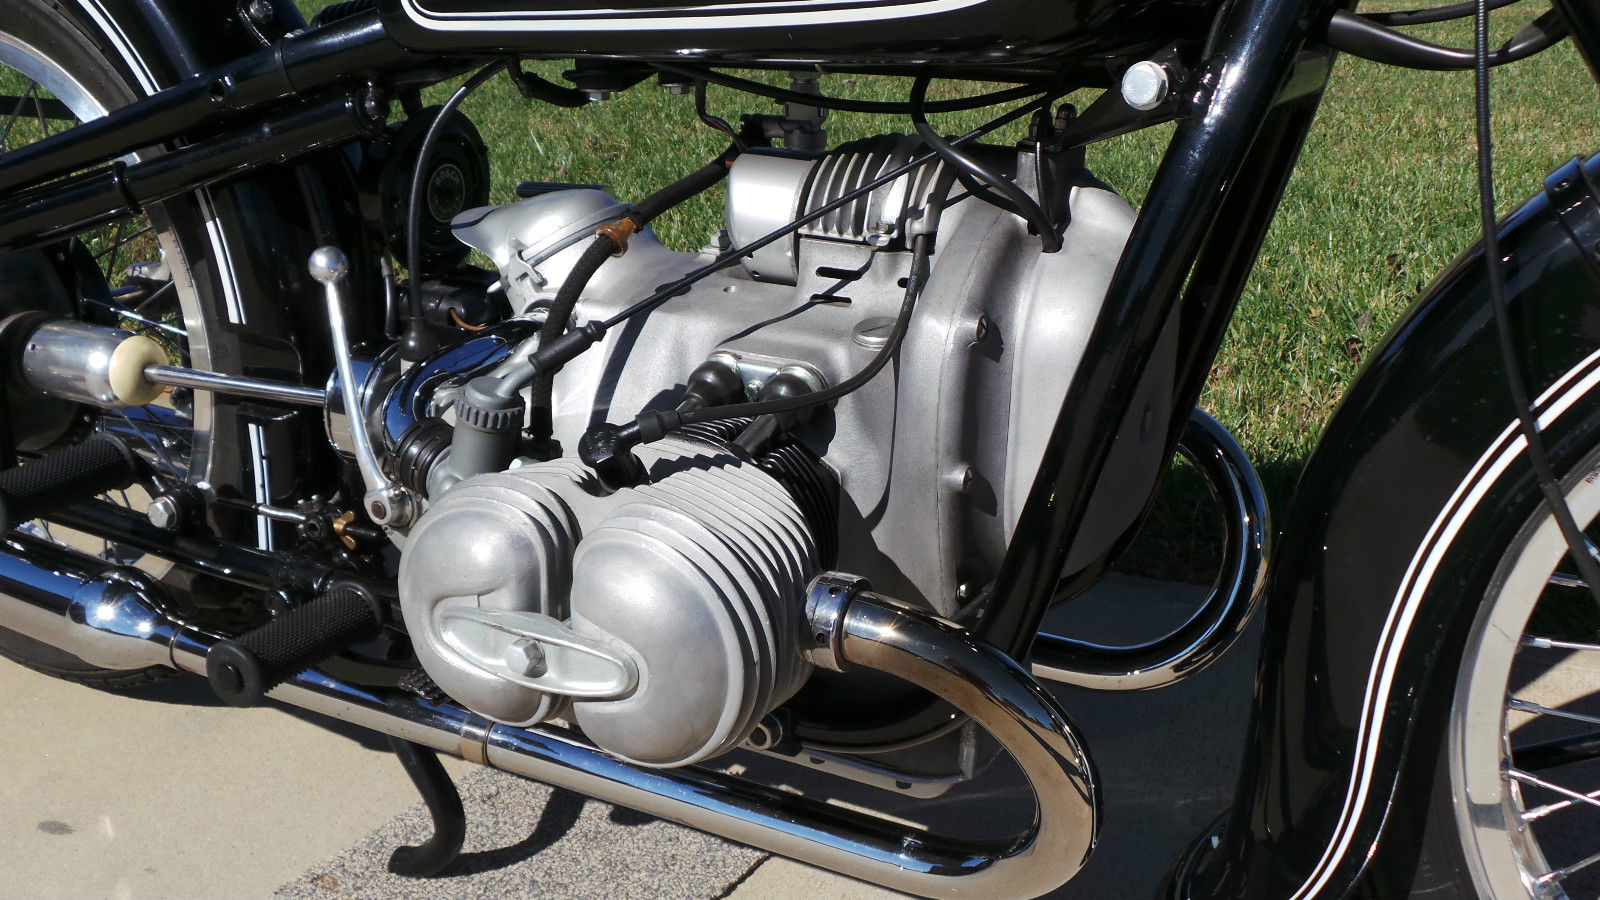 Restored Bmw R51 2 1950 Photographs At Classic Bikes Restored Bikes Restored